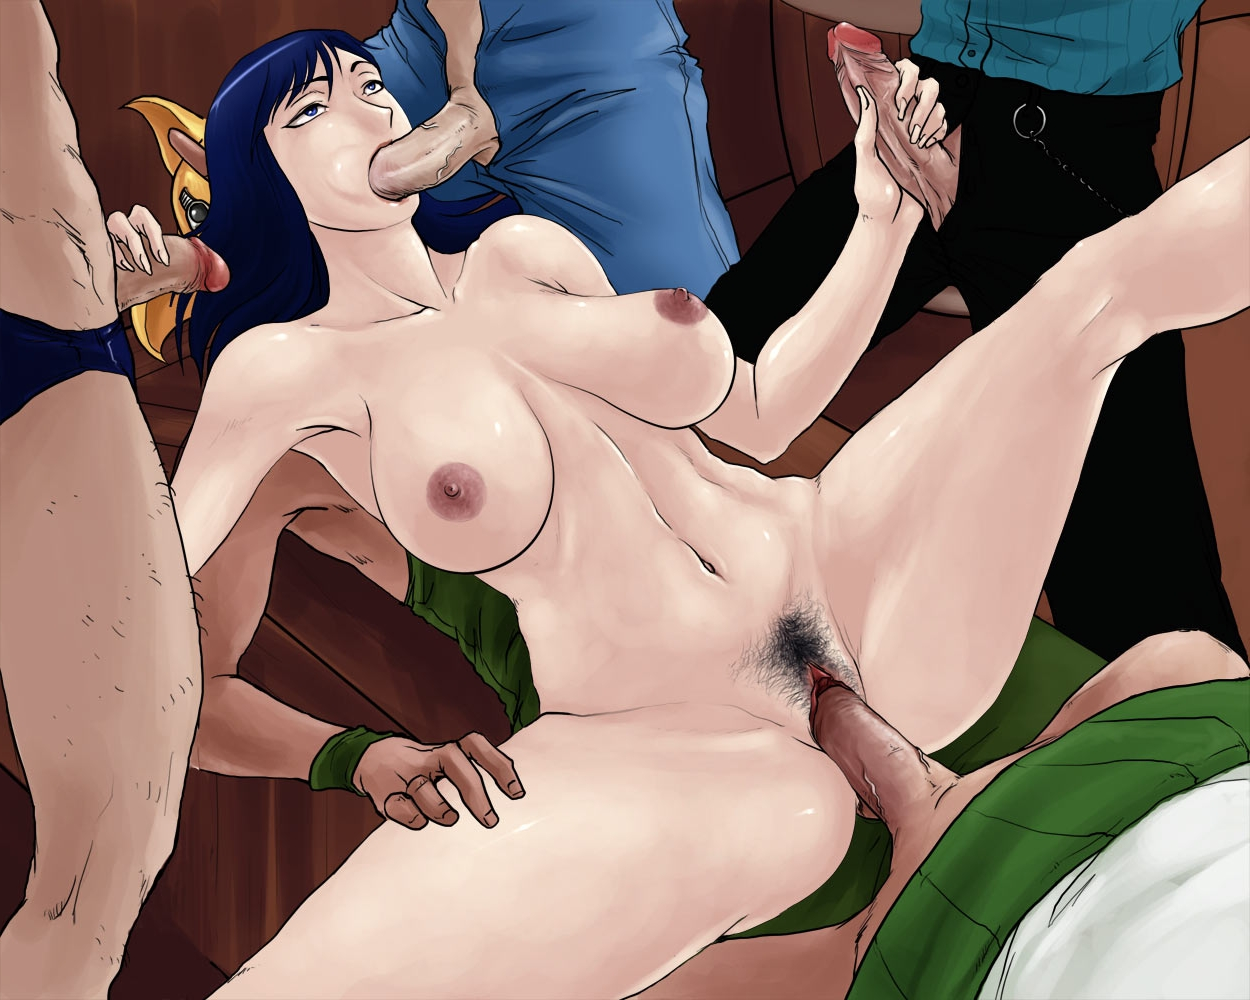 Toon sex pic ##000130249039 female ass bottomless franky gangbang group sex monkey d. luffy nico robin one piece pubic hair pussy rennes roronoa zoro sanji sogeking spread legs uncensored usopp vaginal penetration